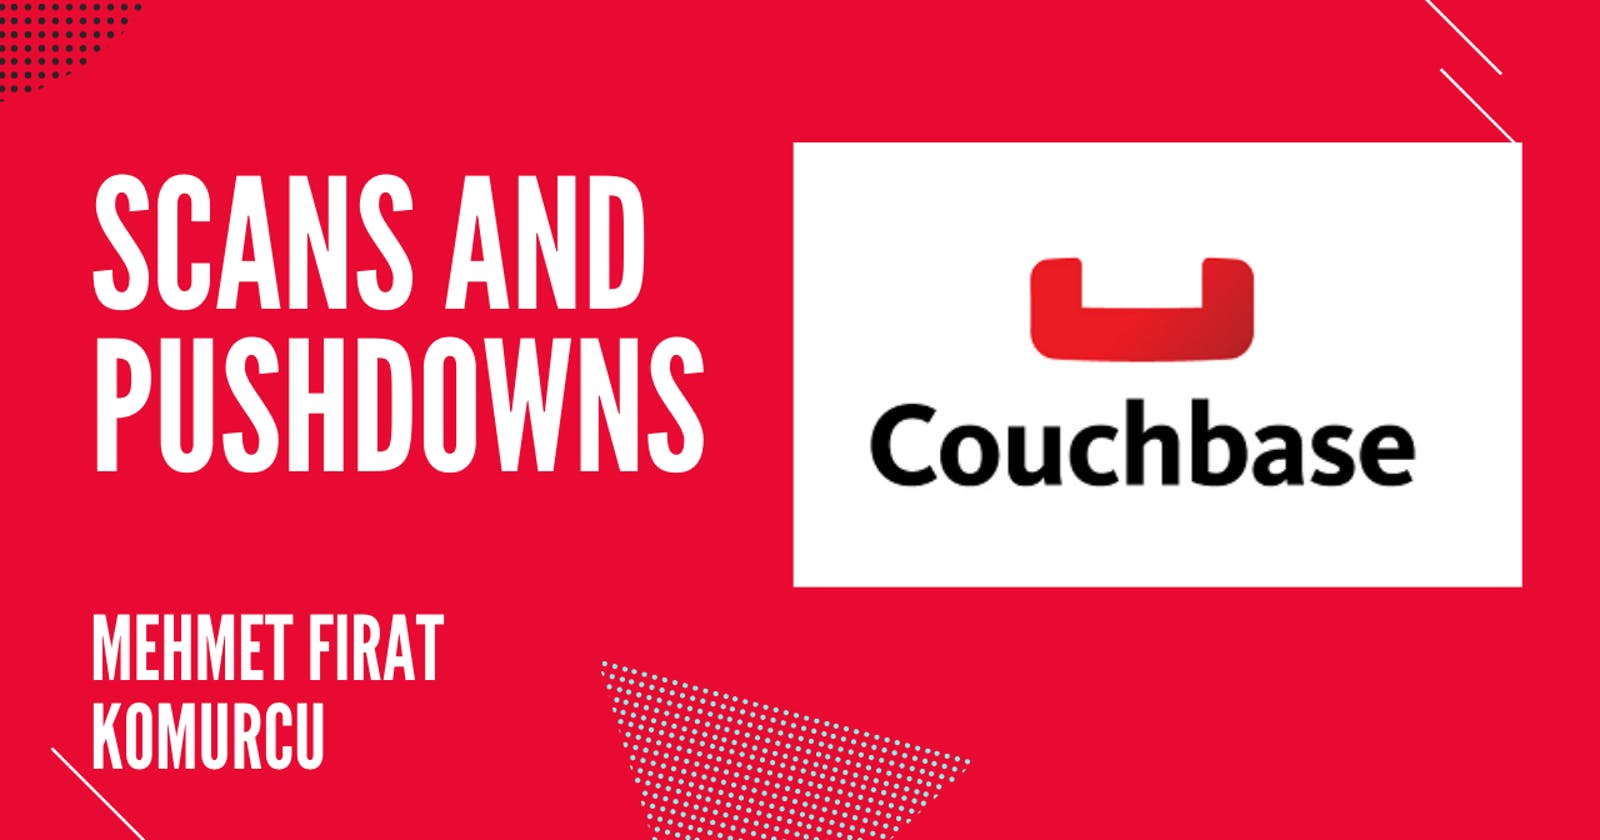 Couchbase: Scans and Pushdowns